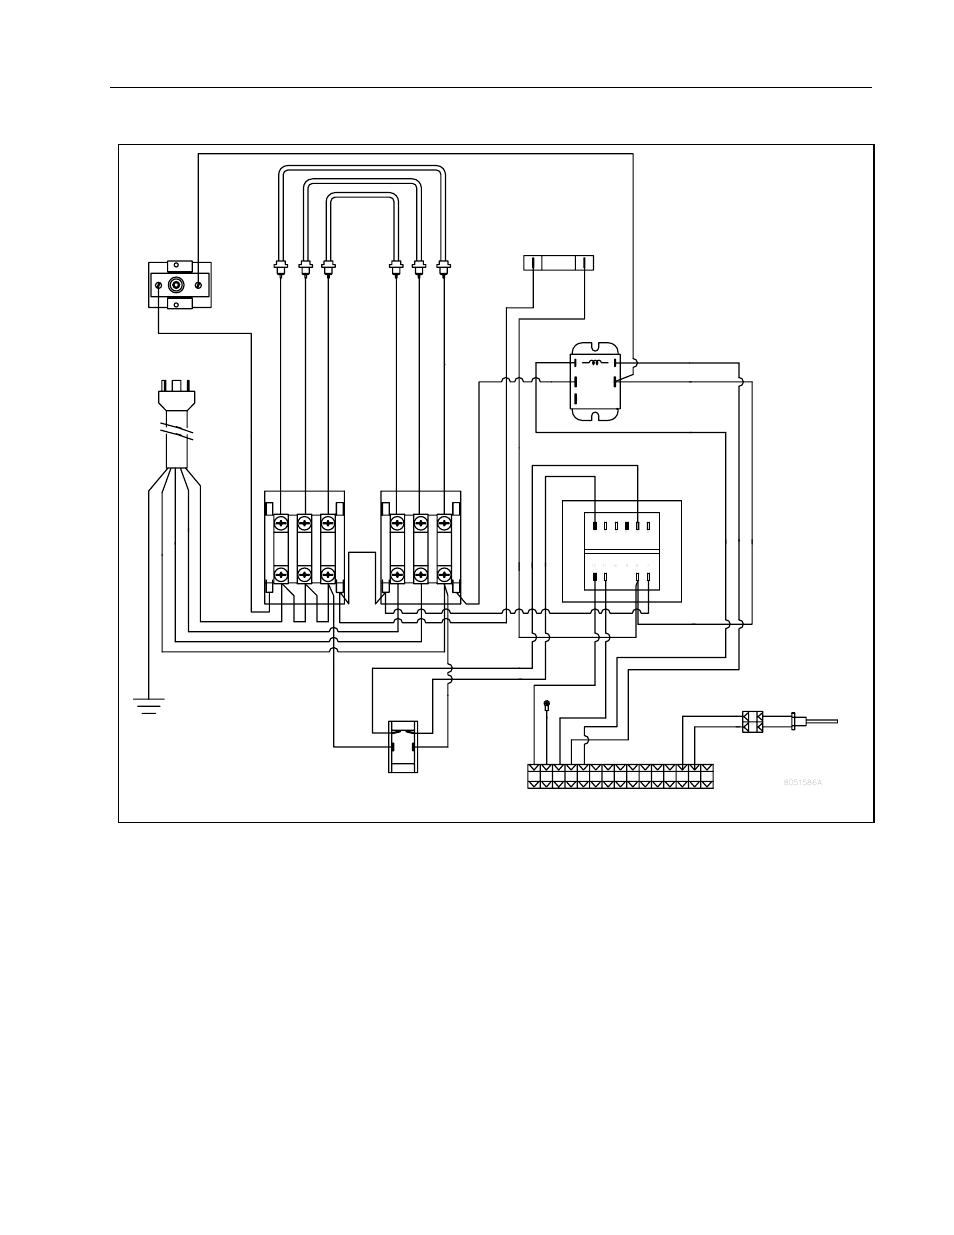 hight resolution of frymaster wiring diagram wiring diagrams loop wiring diagram frymaster wiring diagram